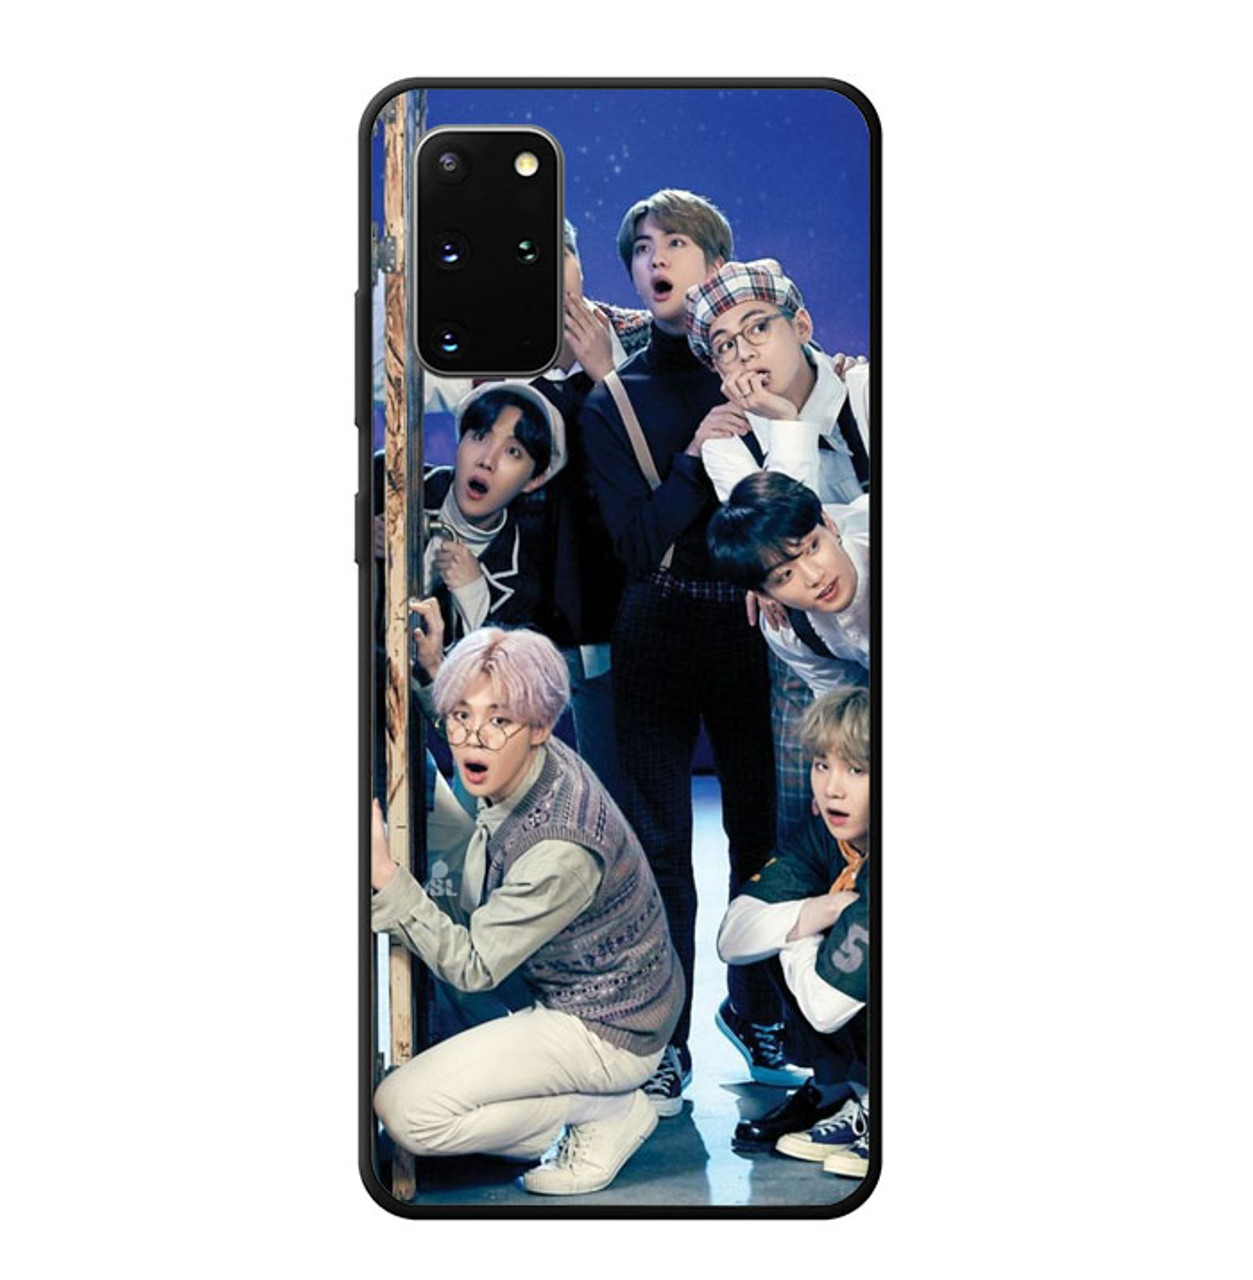 Bts Wallpaper Ff0189 Samsung Galaxy S20 Plus S20 5g Case Flazzy Store